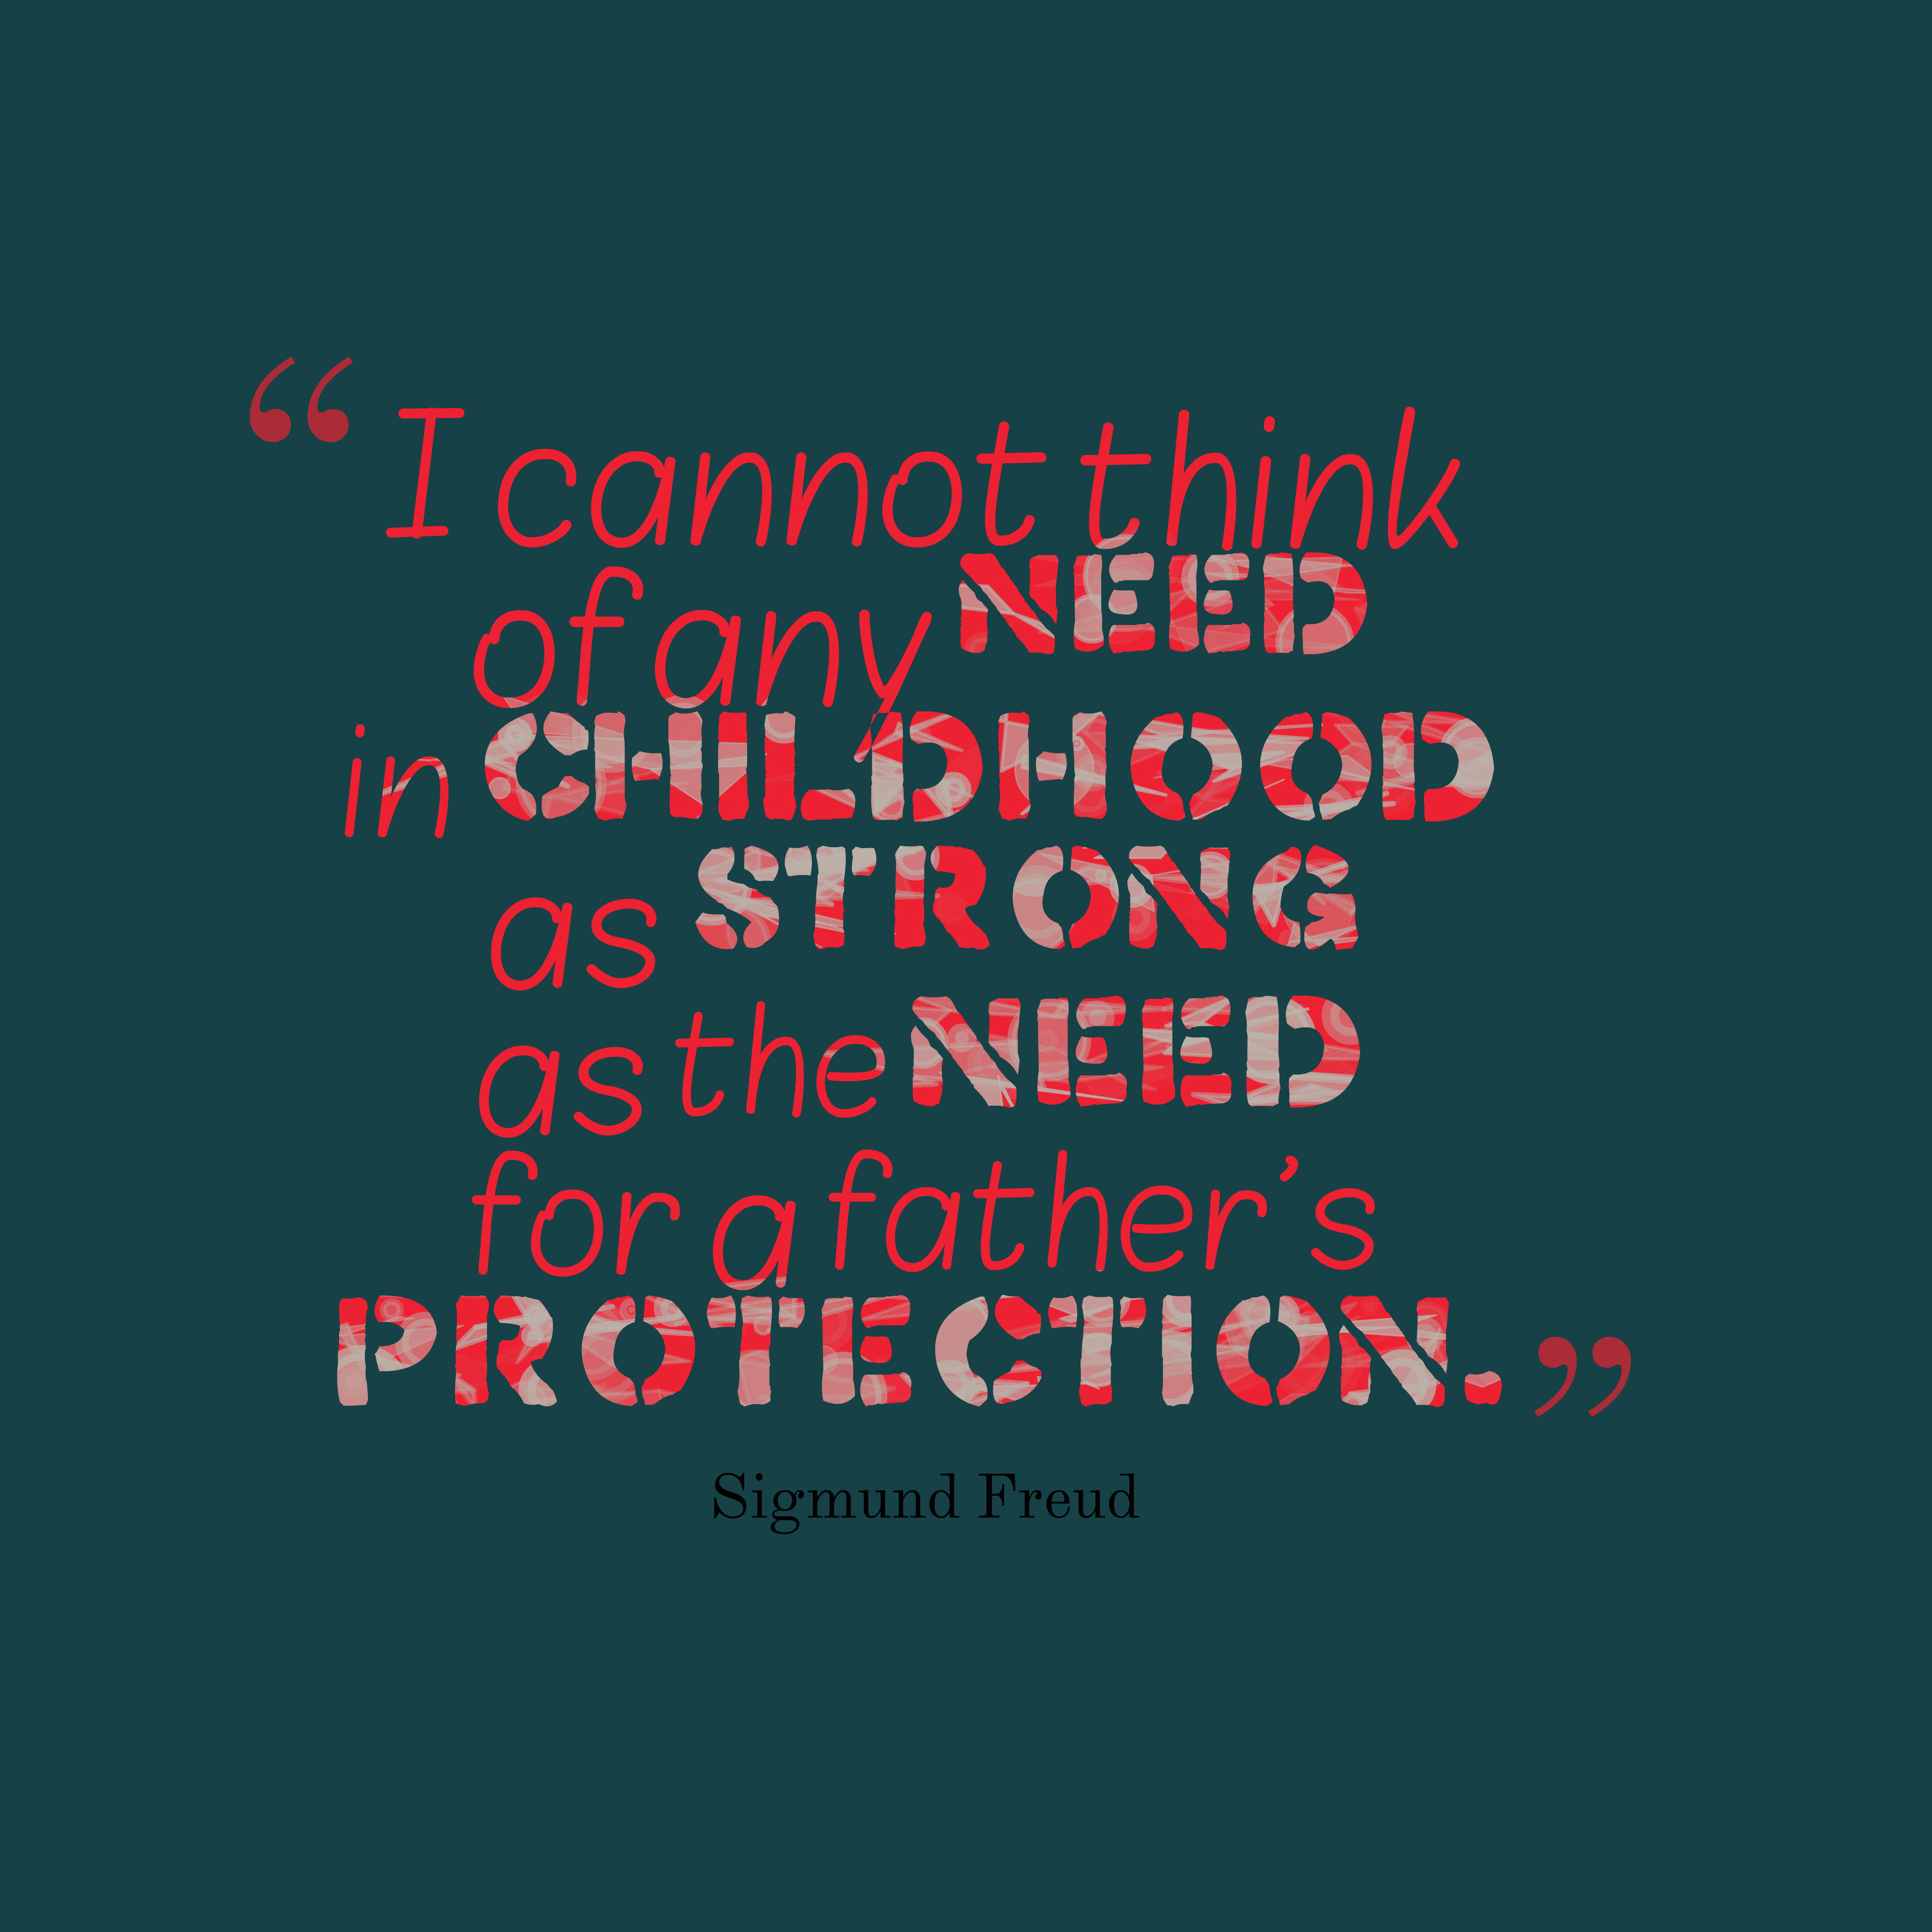 Sigmund Freud Quote About Father